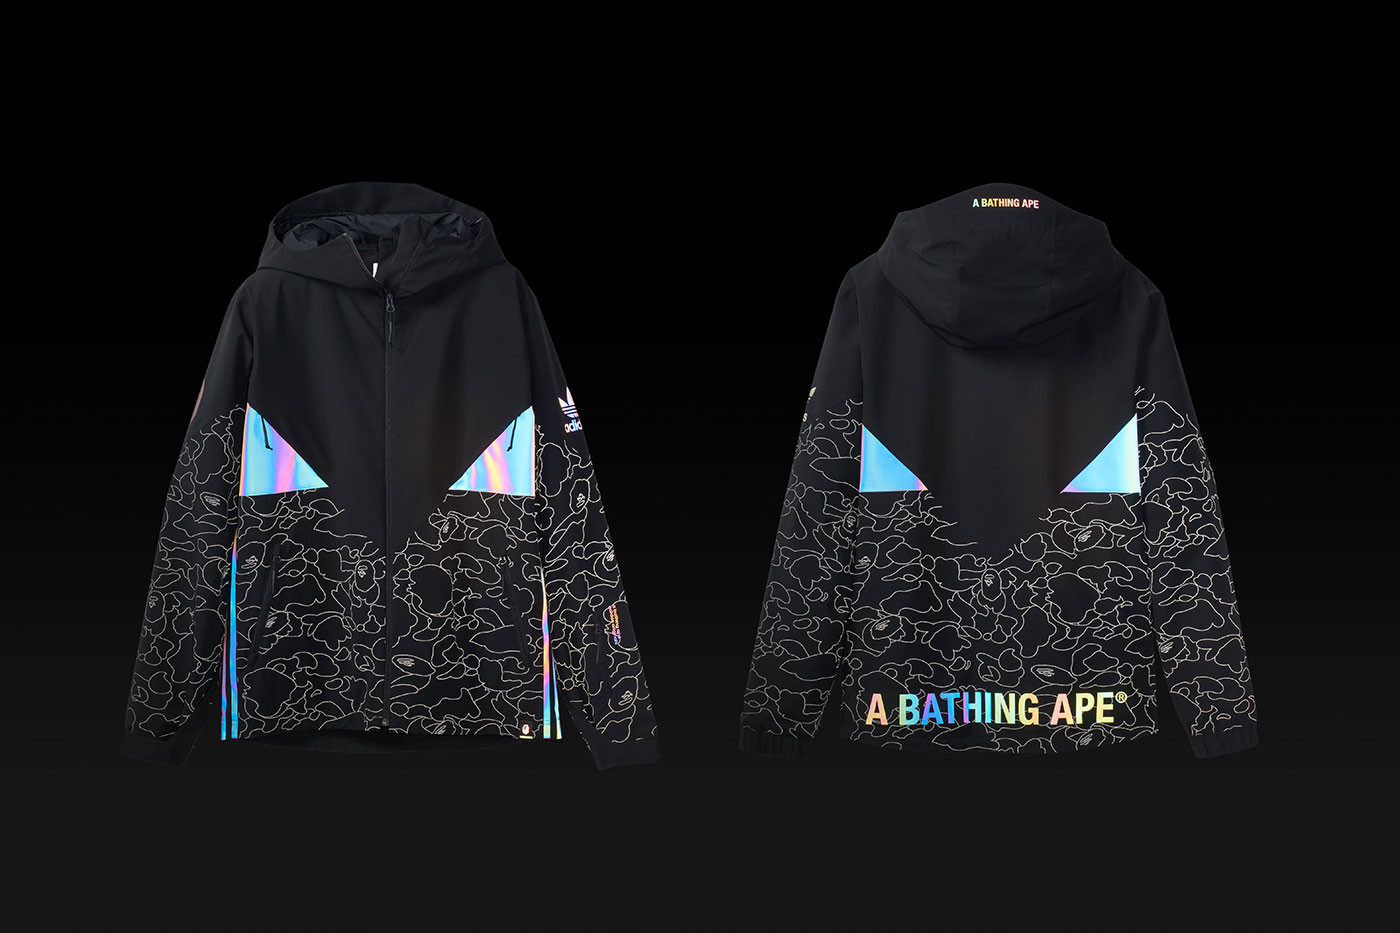 2018_10_bape-adidas-snowboarding-collaboration-release-date-031.jpg